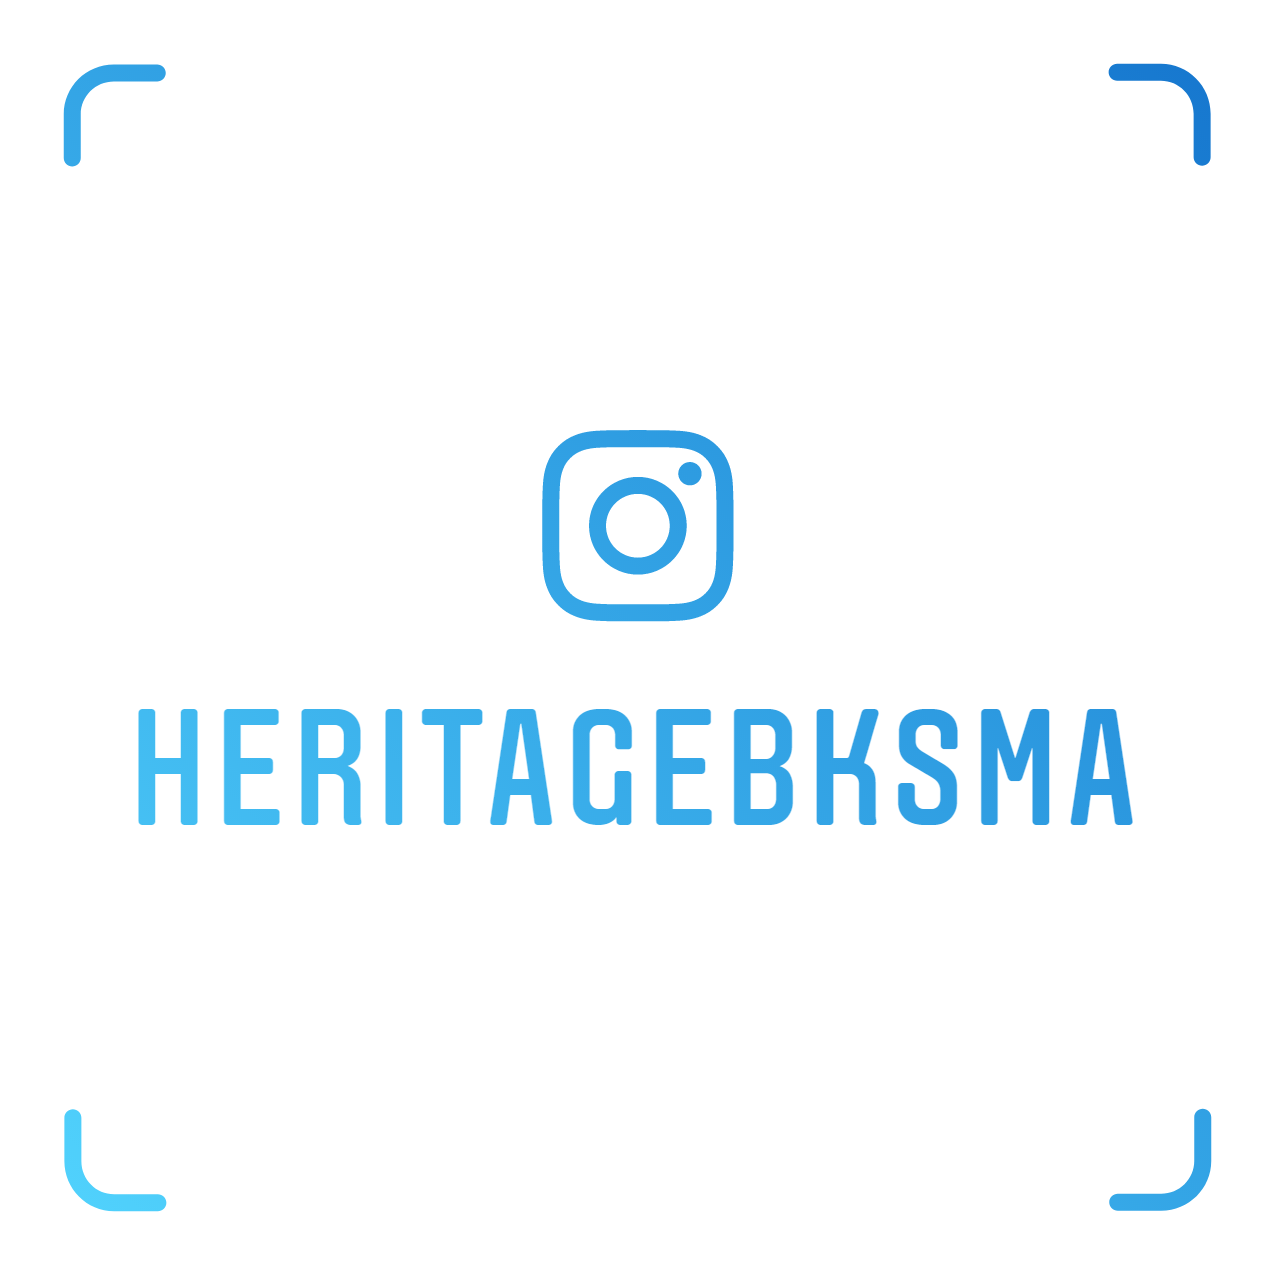 Scan our nametag with the Instagram camera to easily follow us! -